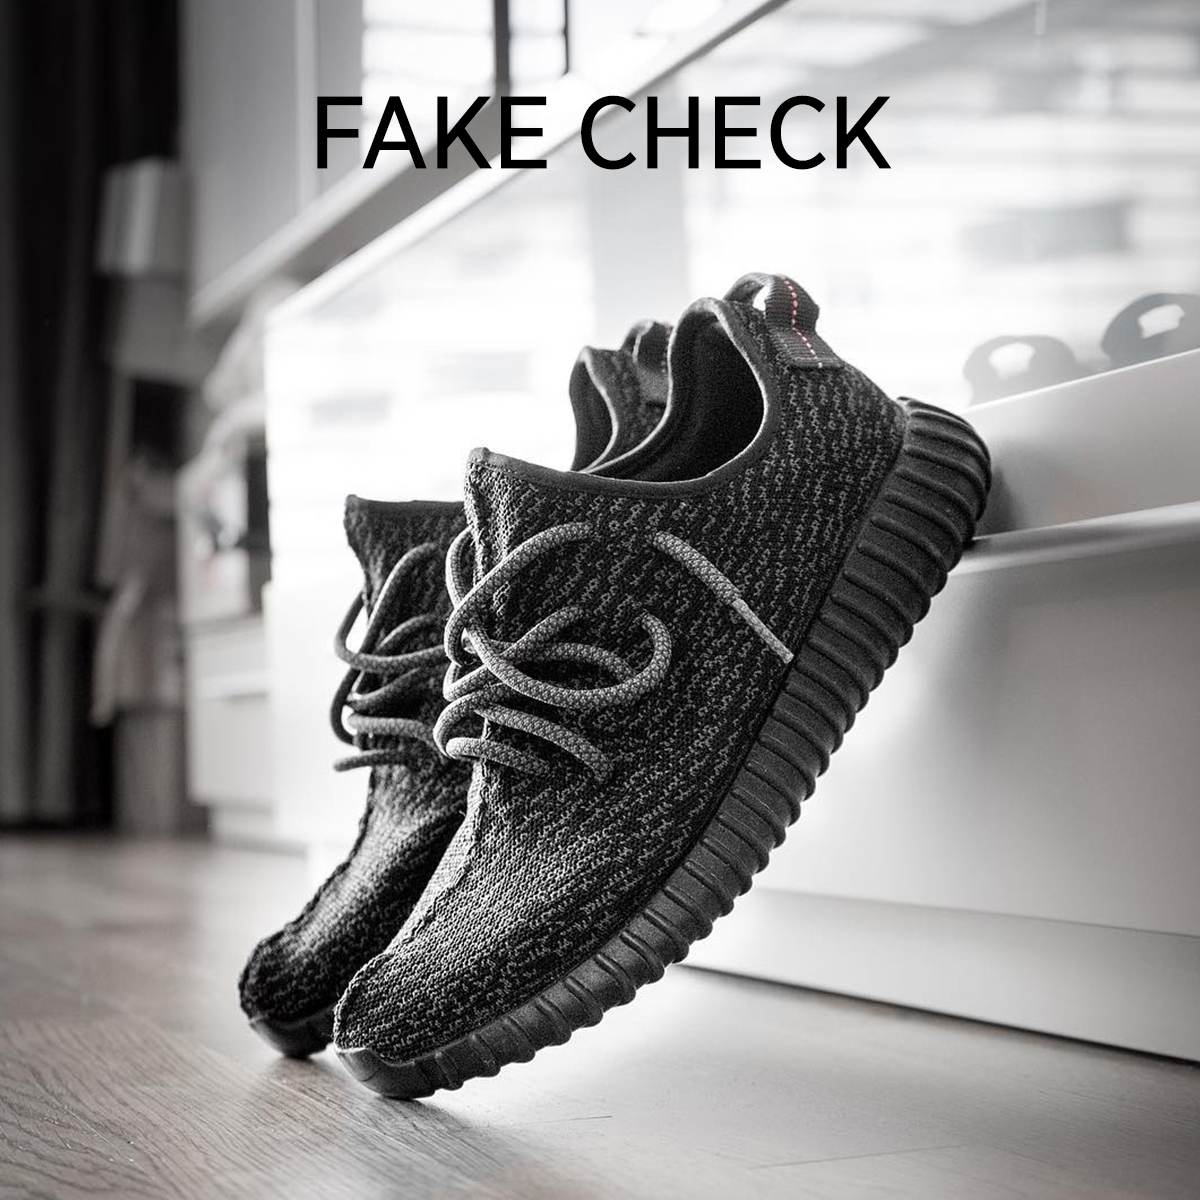 100% authentic 9cce2 9a135 adidas Yeezy Boost 350  Pirate Black  Fake Check